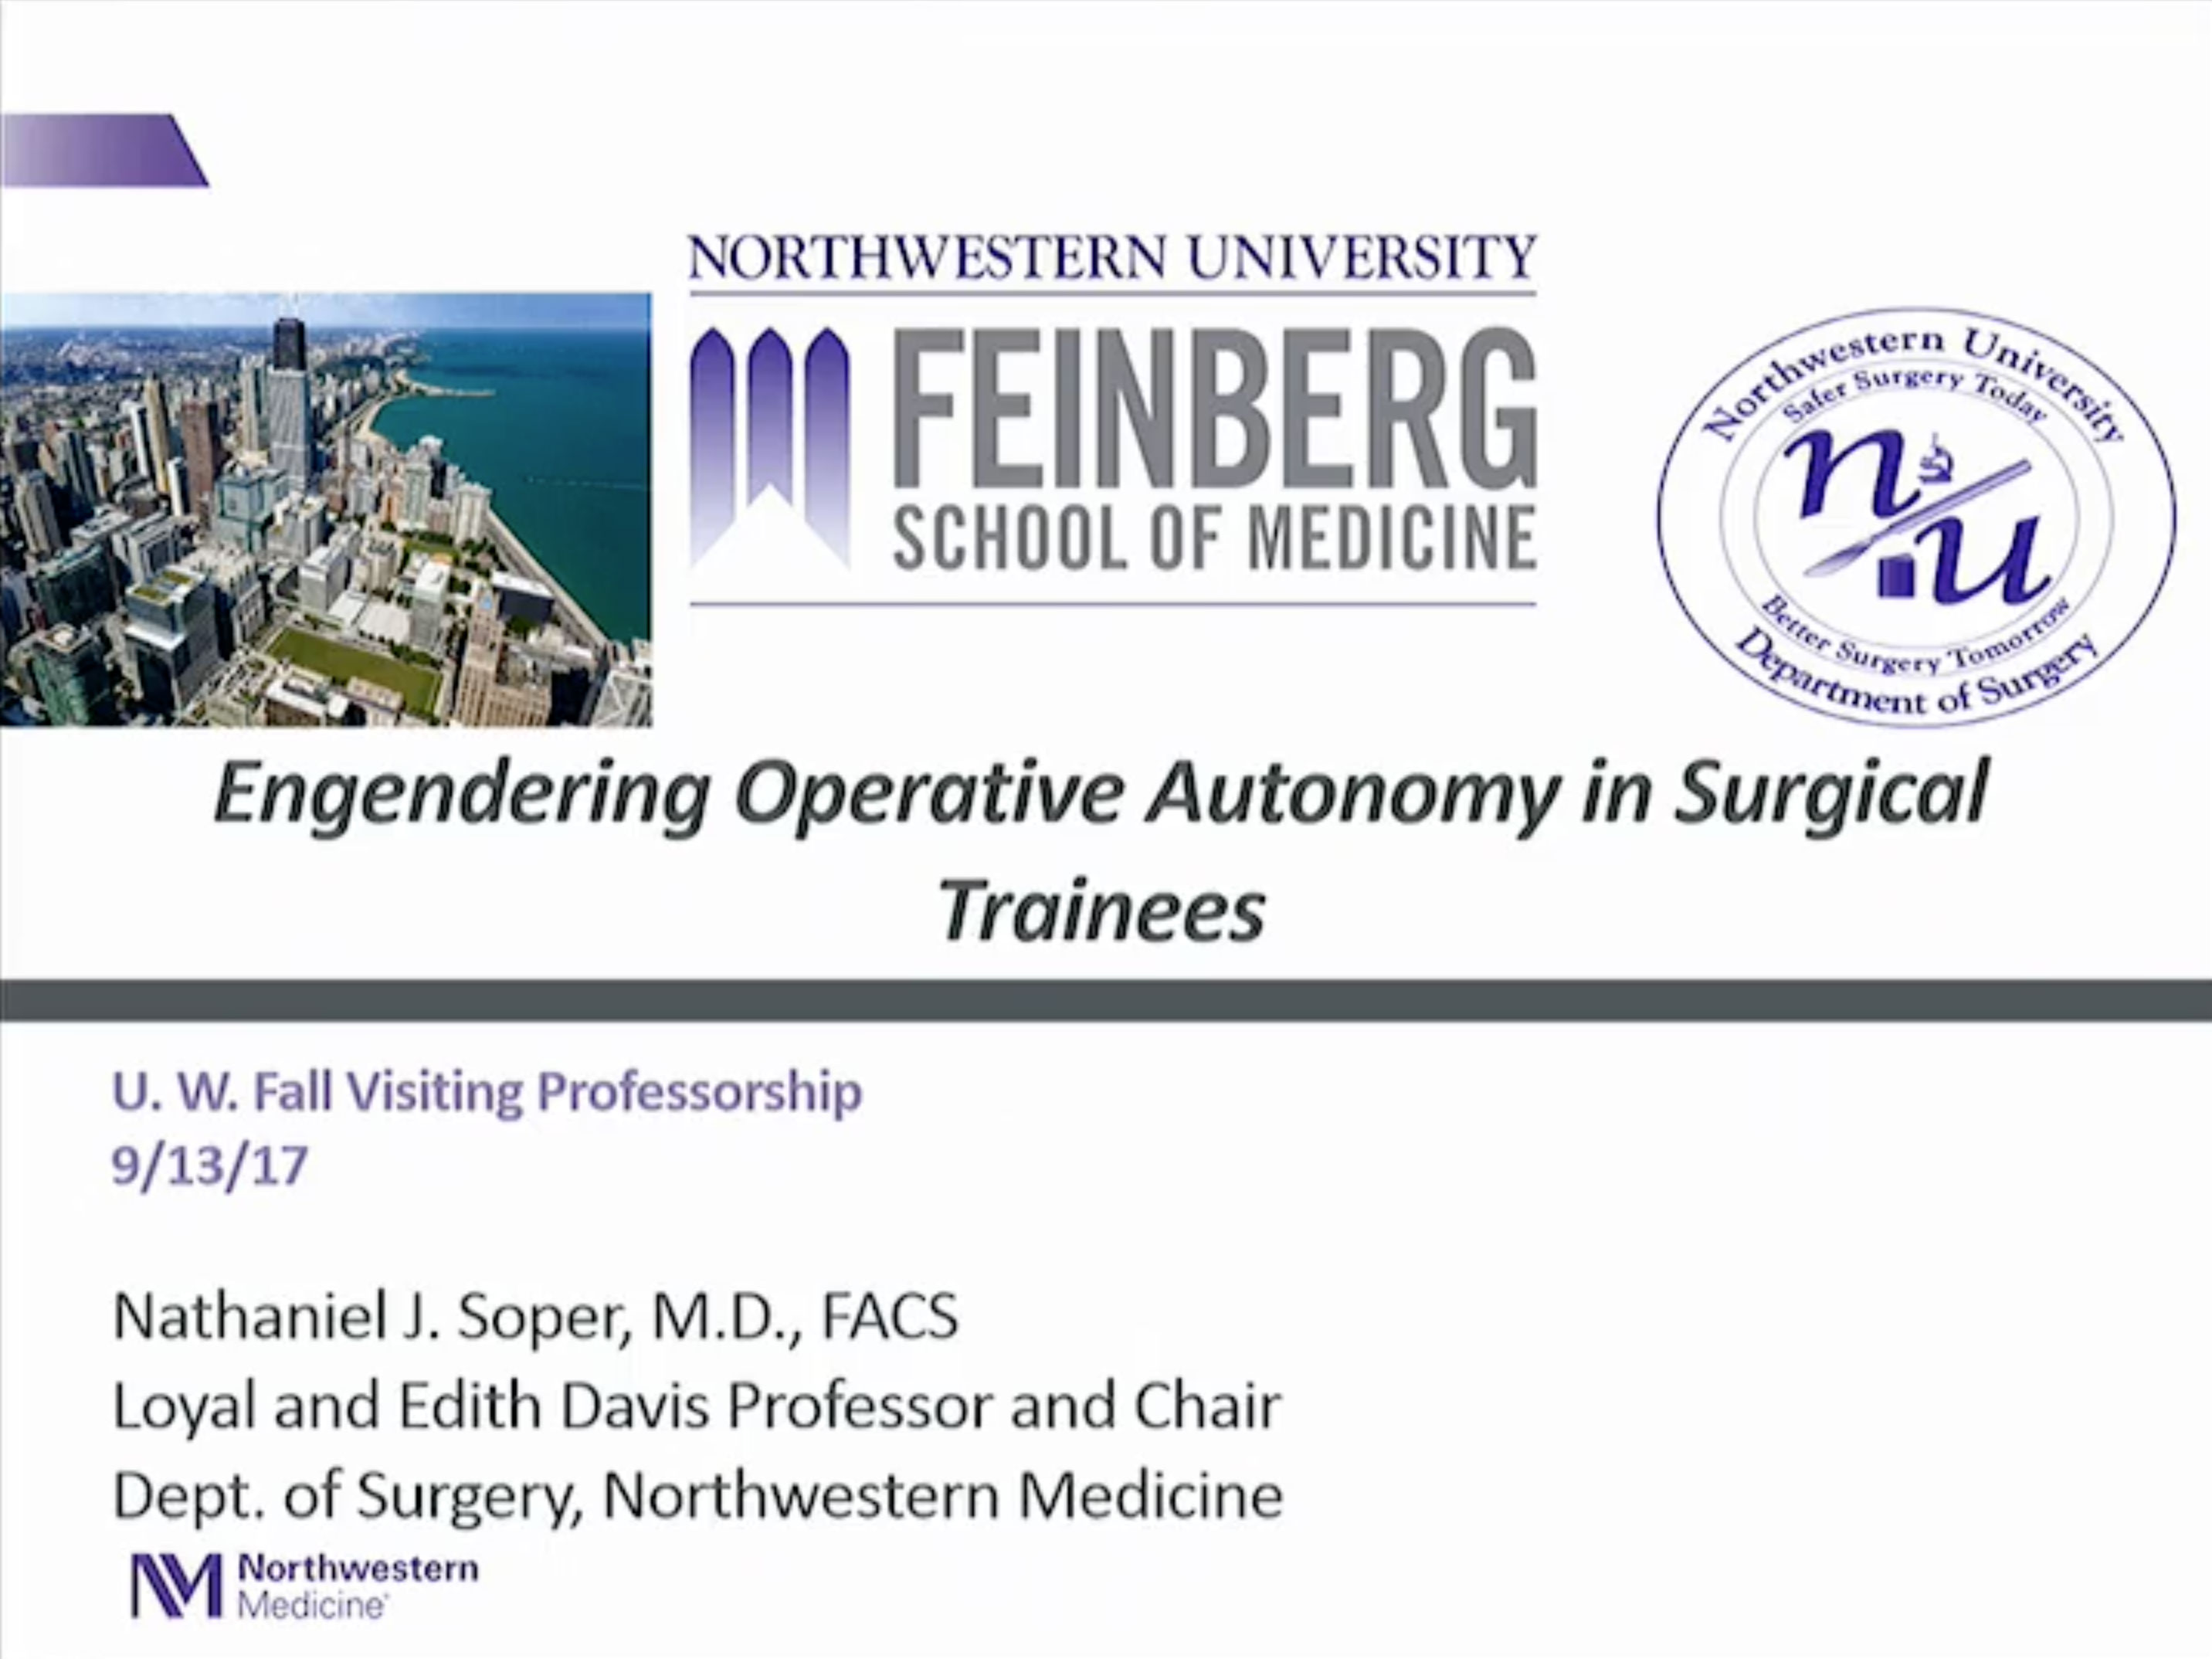 Picture from Engendering Operative Autonomy in Surgical Trainees